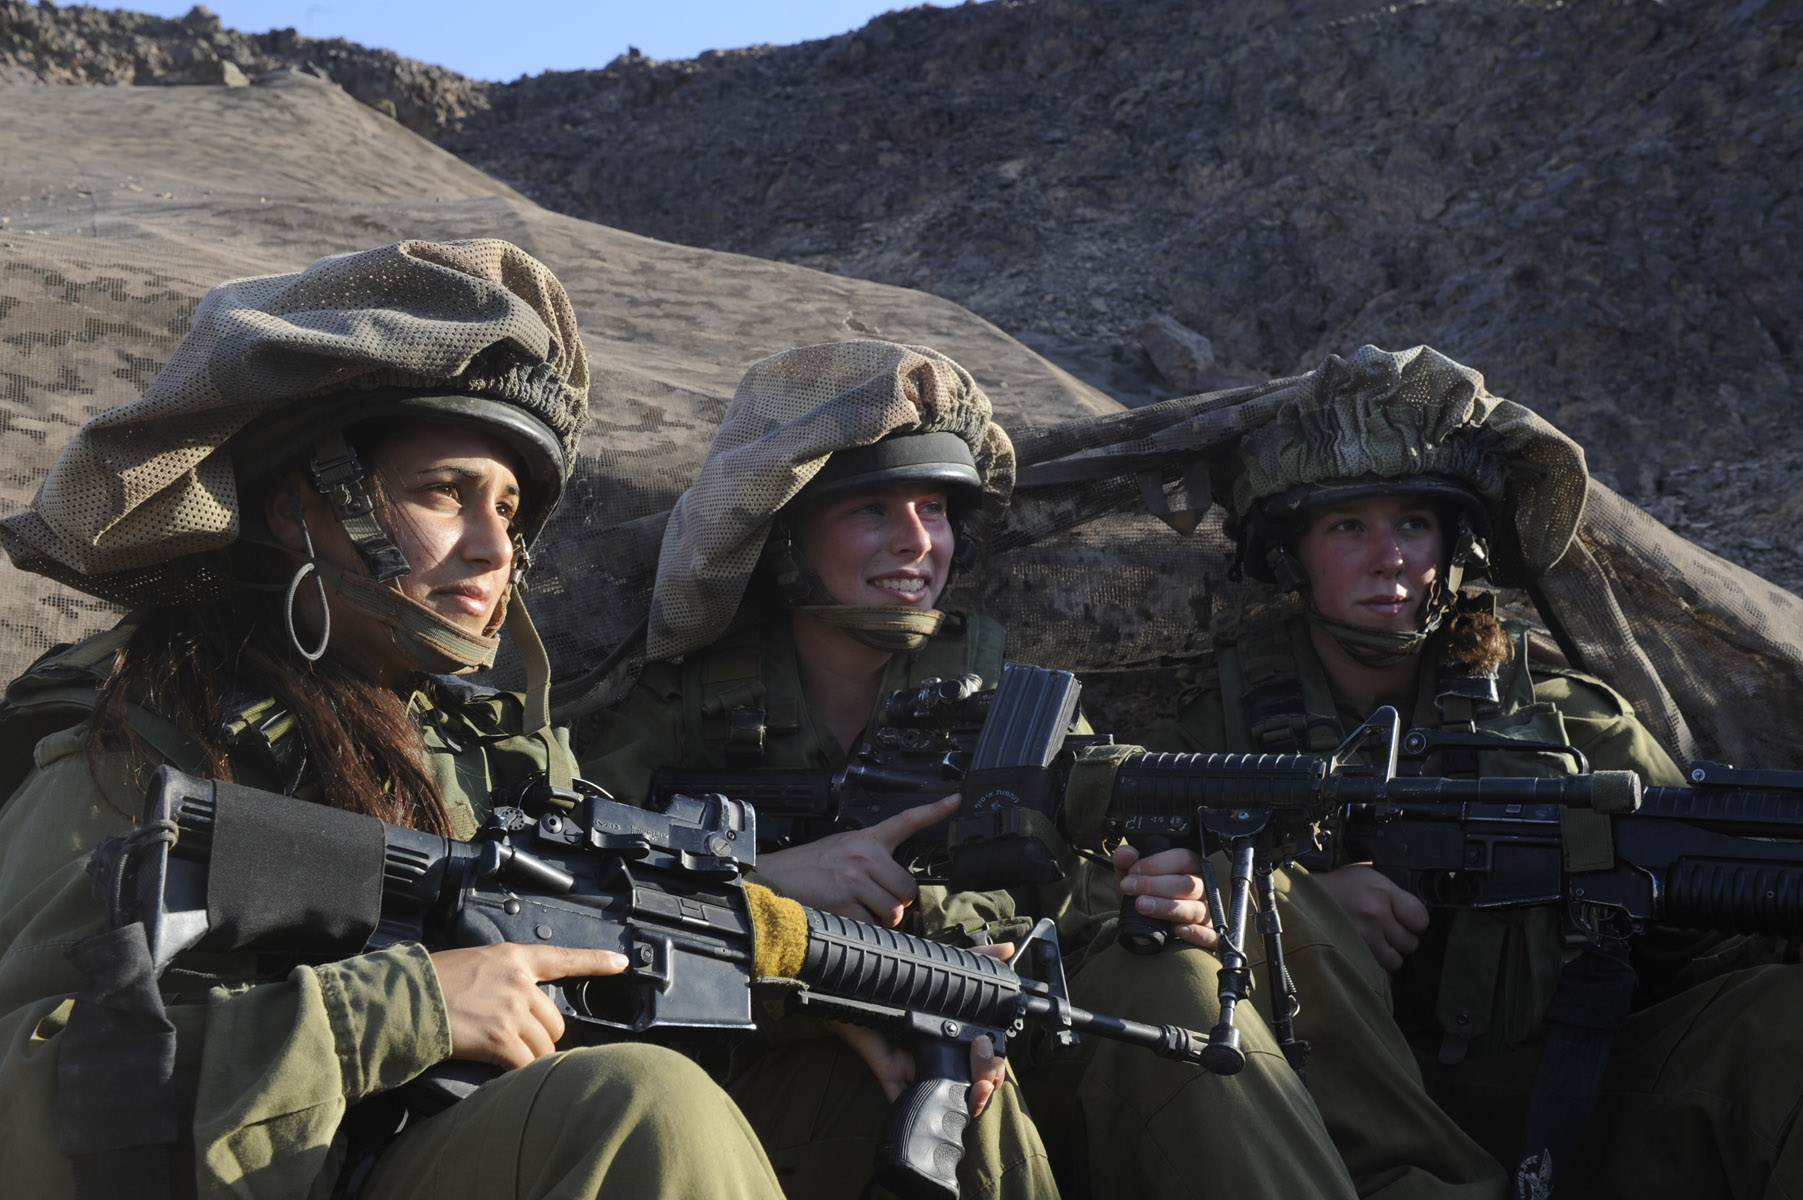 women combat Women have been actively involved the united states military for more than fifty years, but the ban on their participation in combat remains a hotly debated issue.